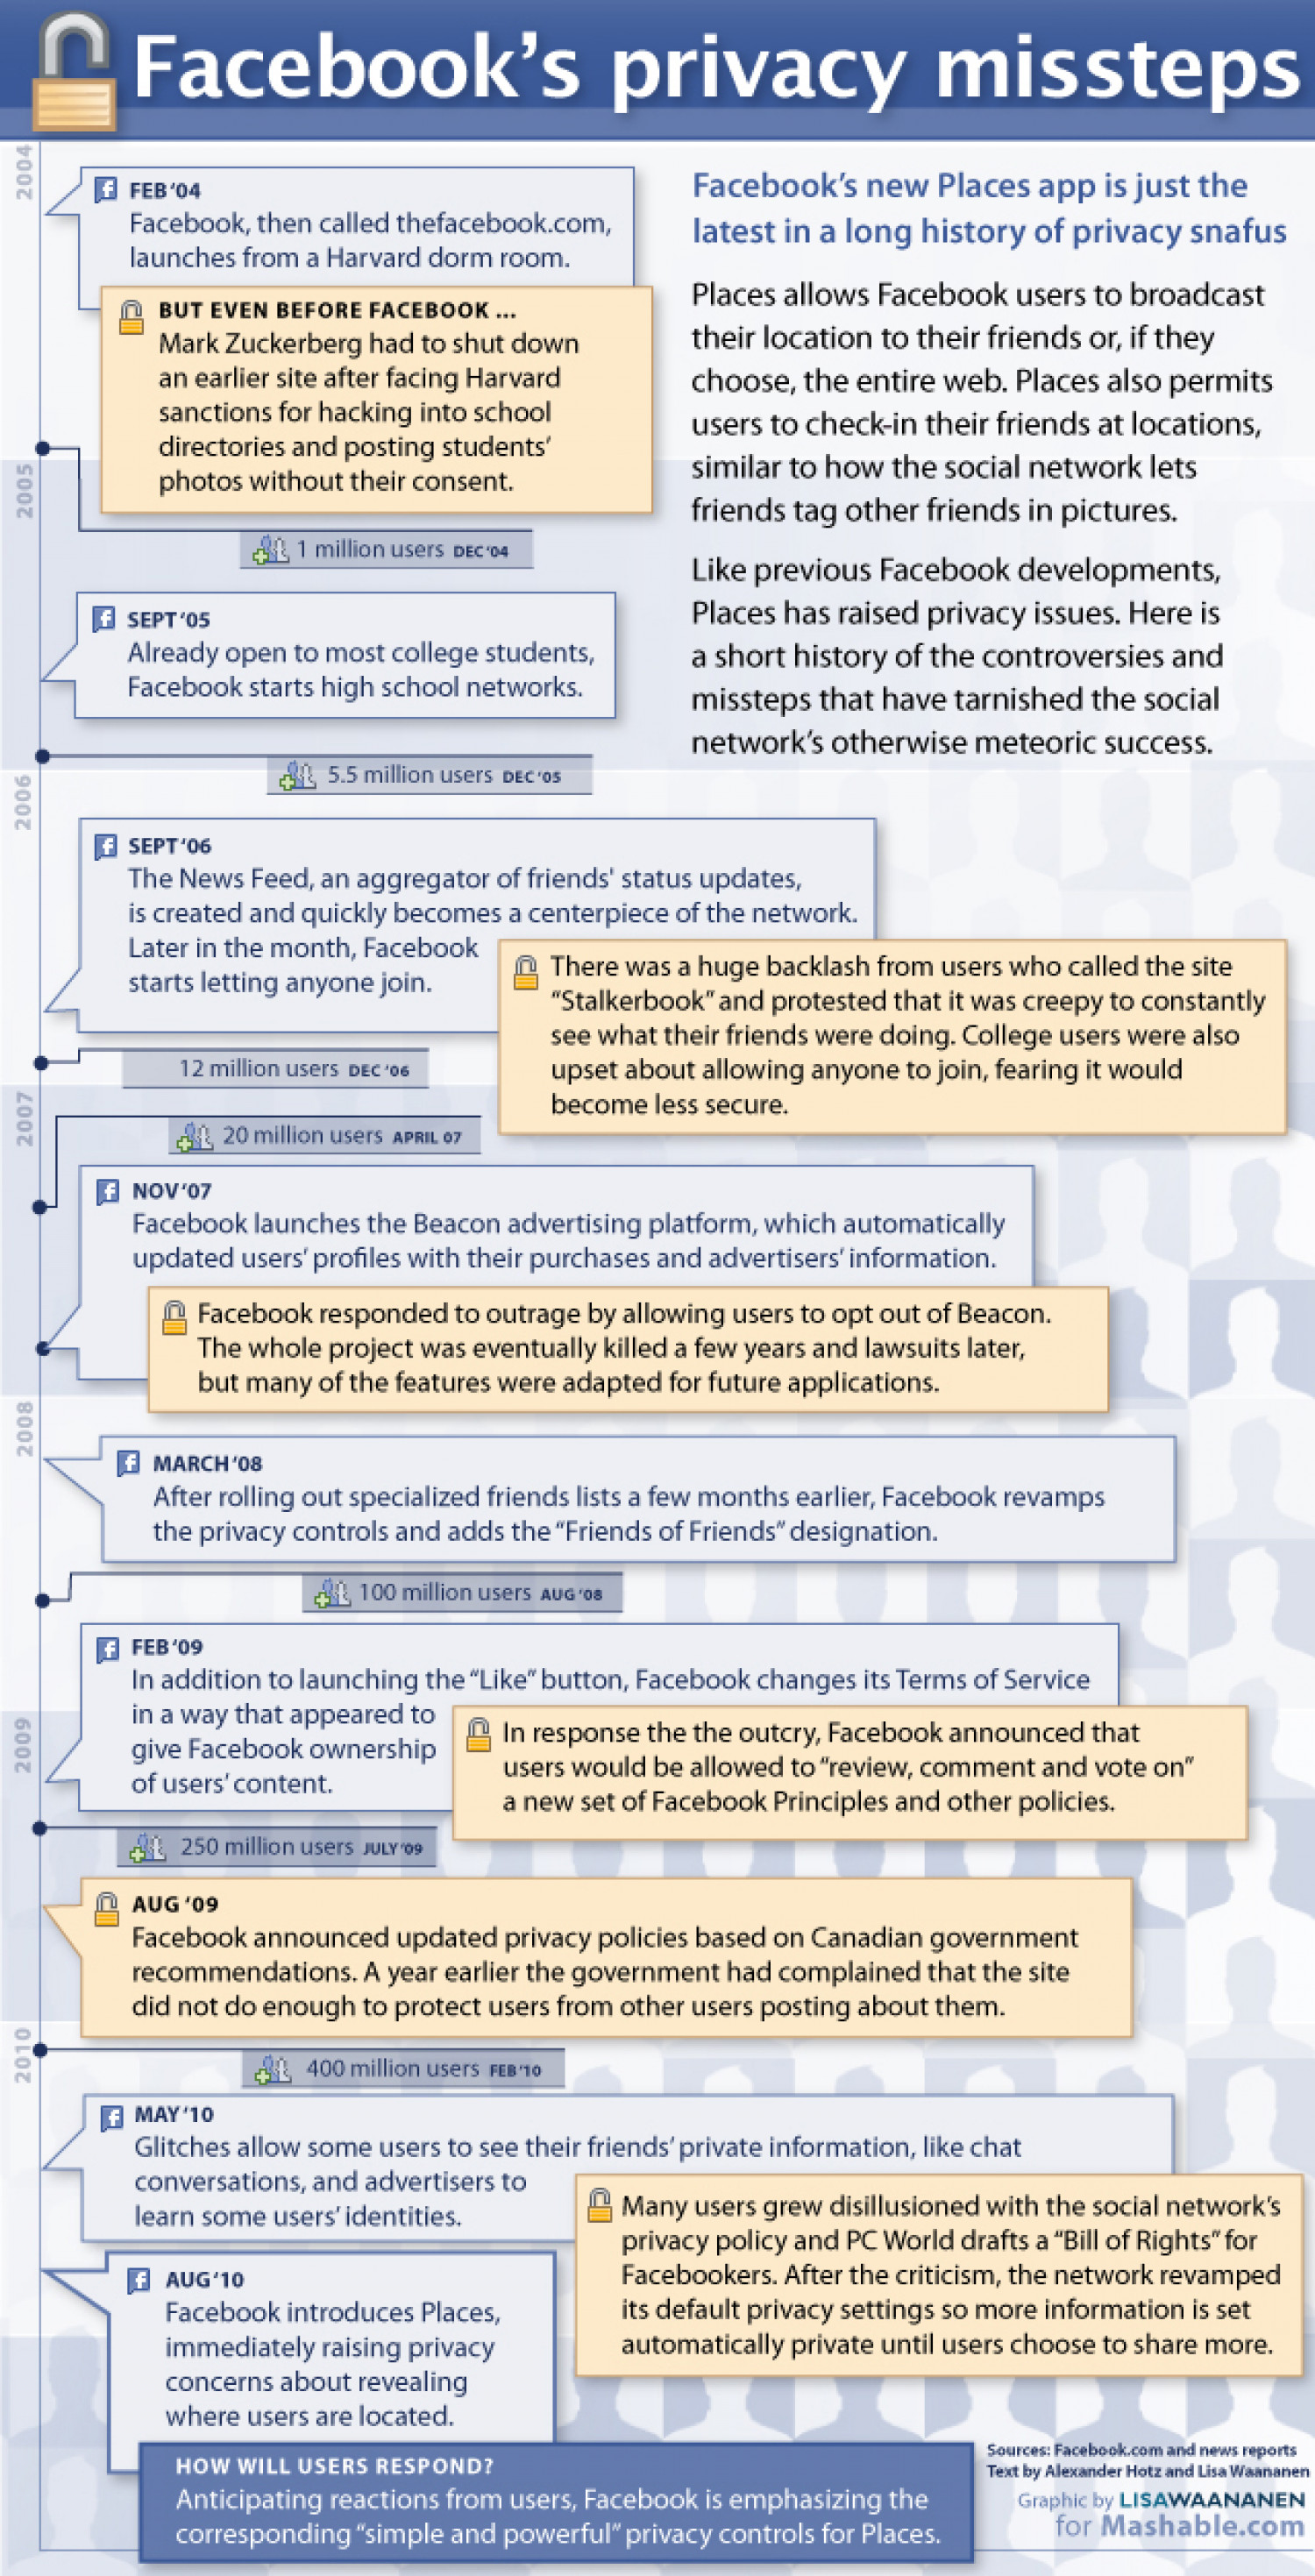 Facebook Privacy: 6 Years of Controversy  Infographic